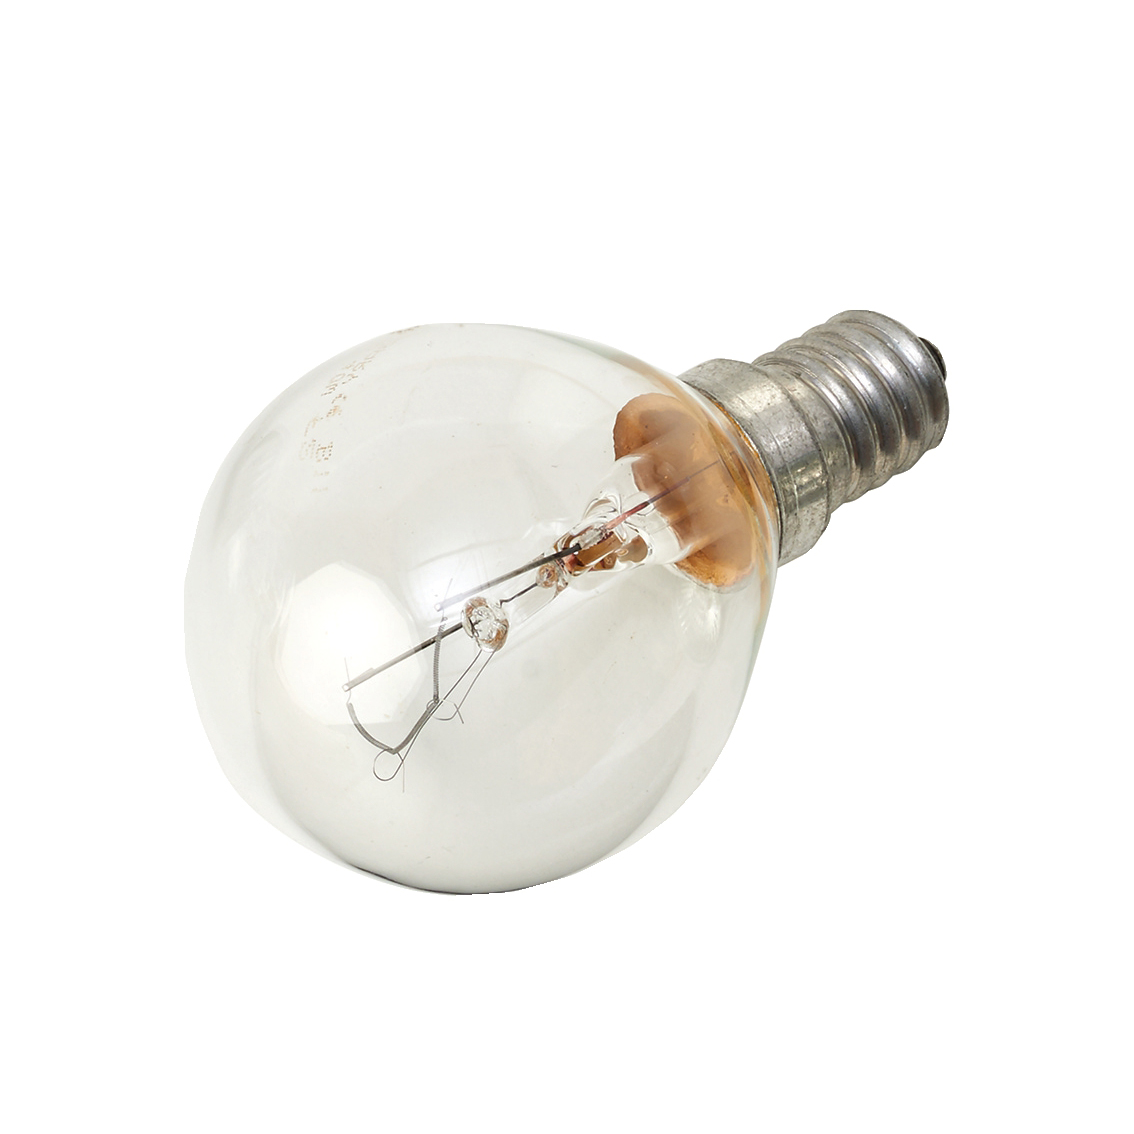 Image for Light Bulb E14 SES Golf Ball Screw Fitting 40/42W Clear